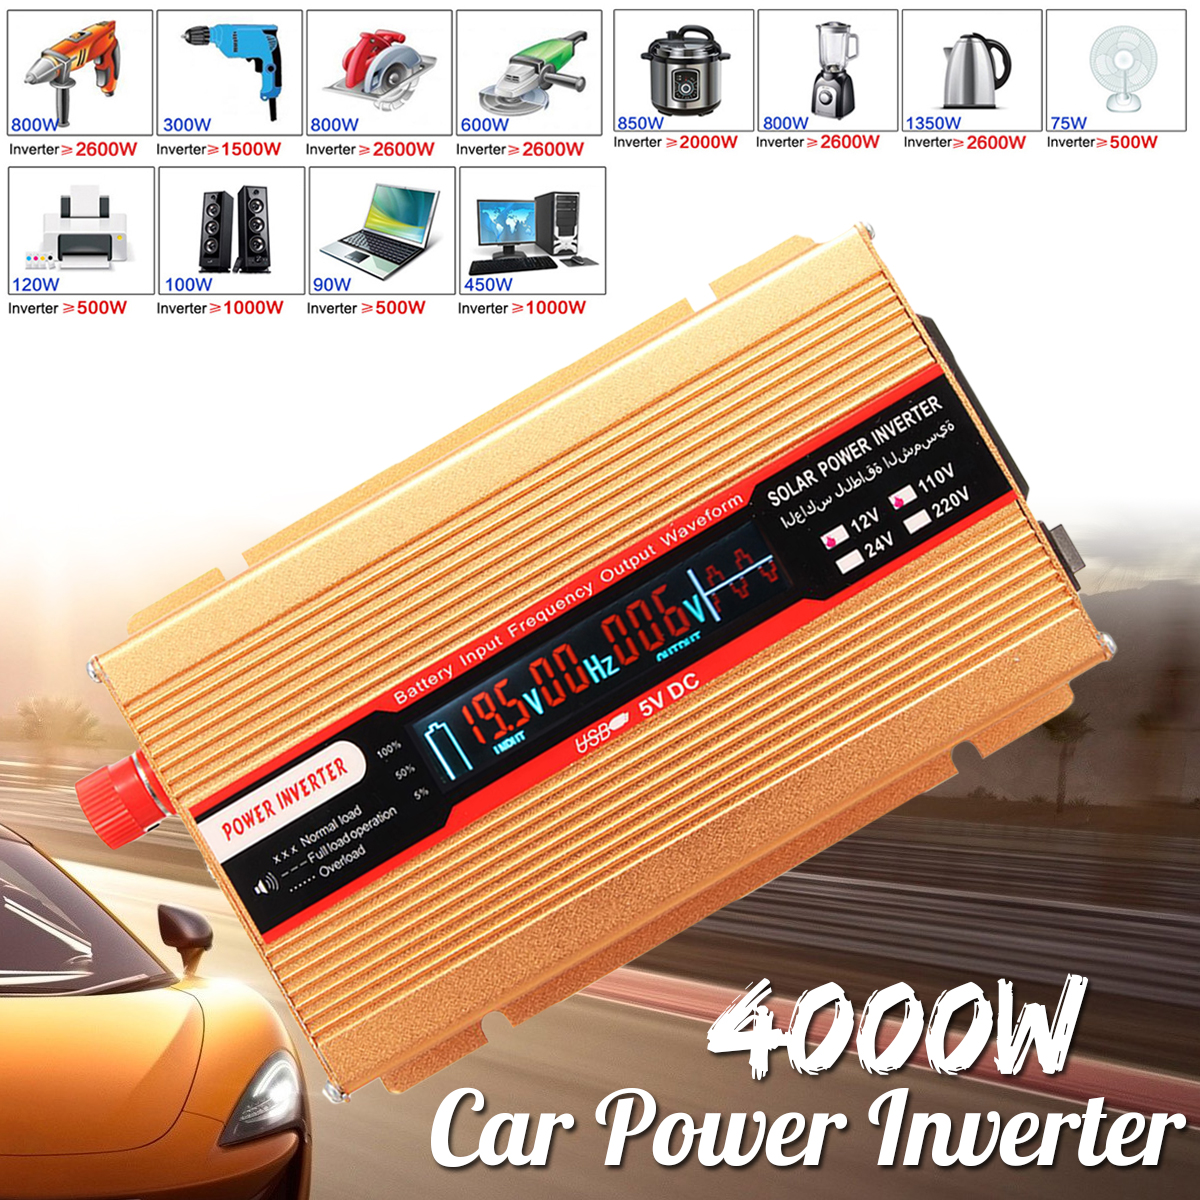 USB PEAK 4000W 12/24V To AC 220/110V Car Power Inverter Voltage Transformer Modified Sine Wave Converter for Various Appliances peak 4000w 12 24v to ac 220 110v car power inverter usb modified sine wave converter voltage transformer for various appliances